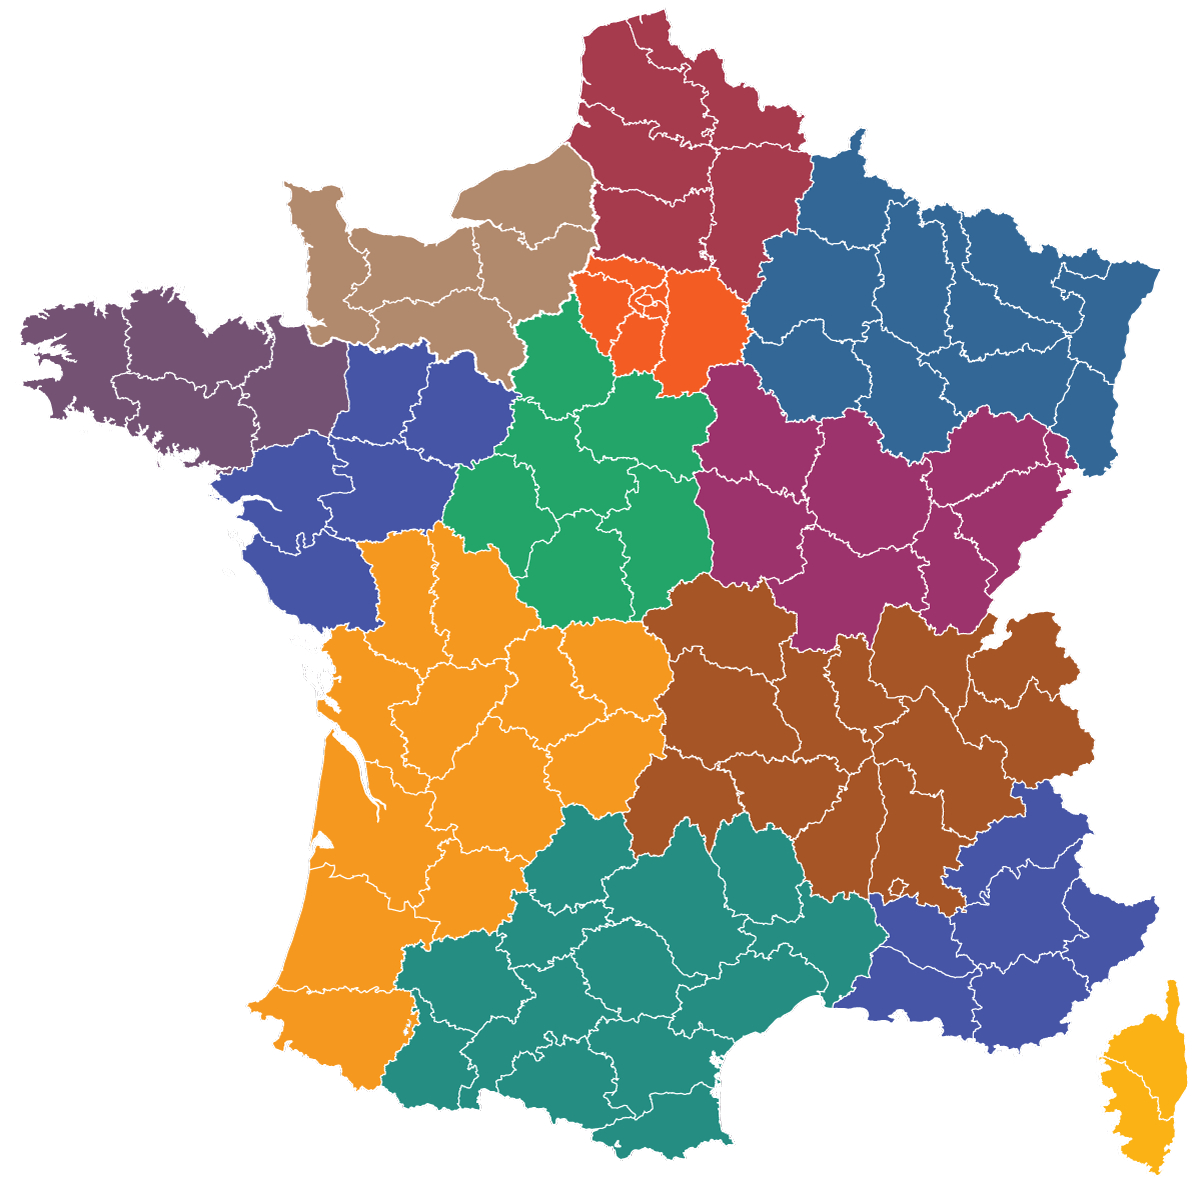 Maps Of The Regions Of France intérieur Départements Et Régions De France